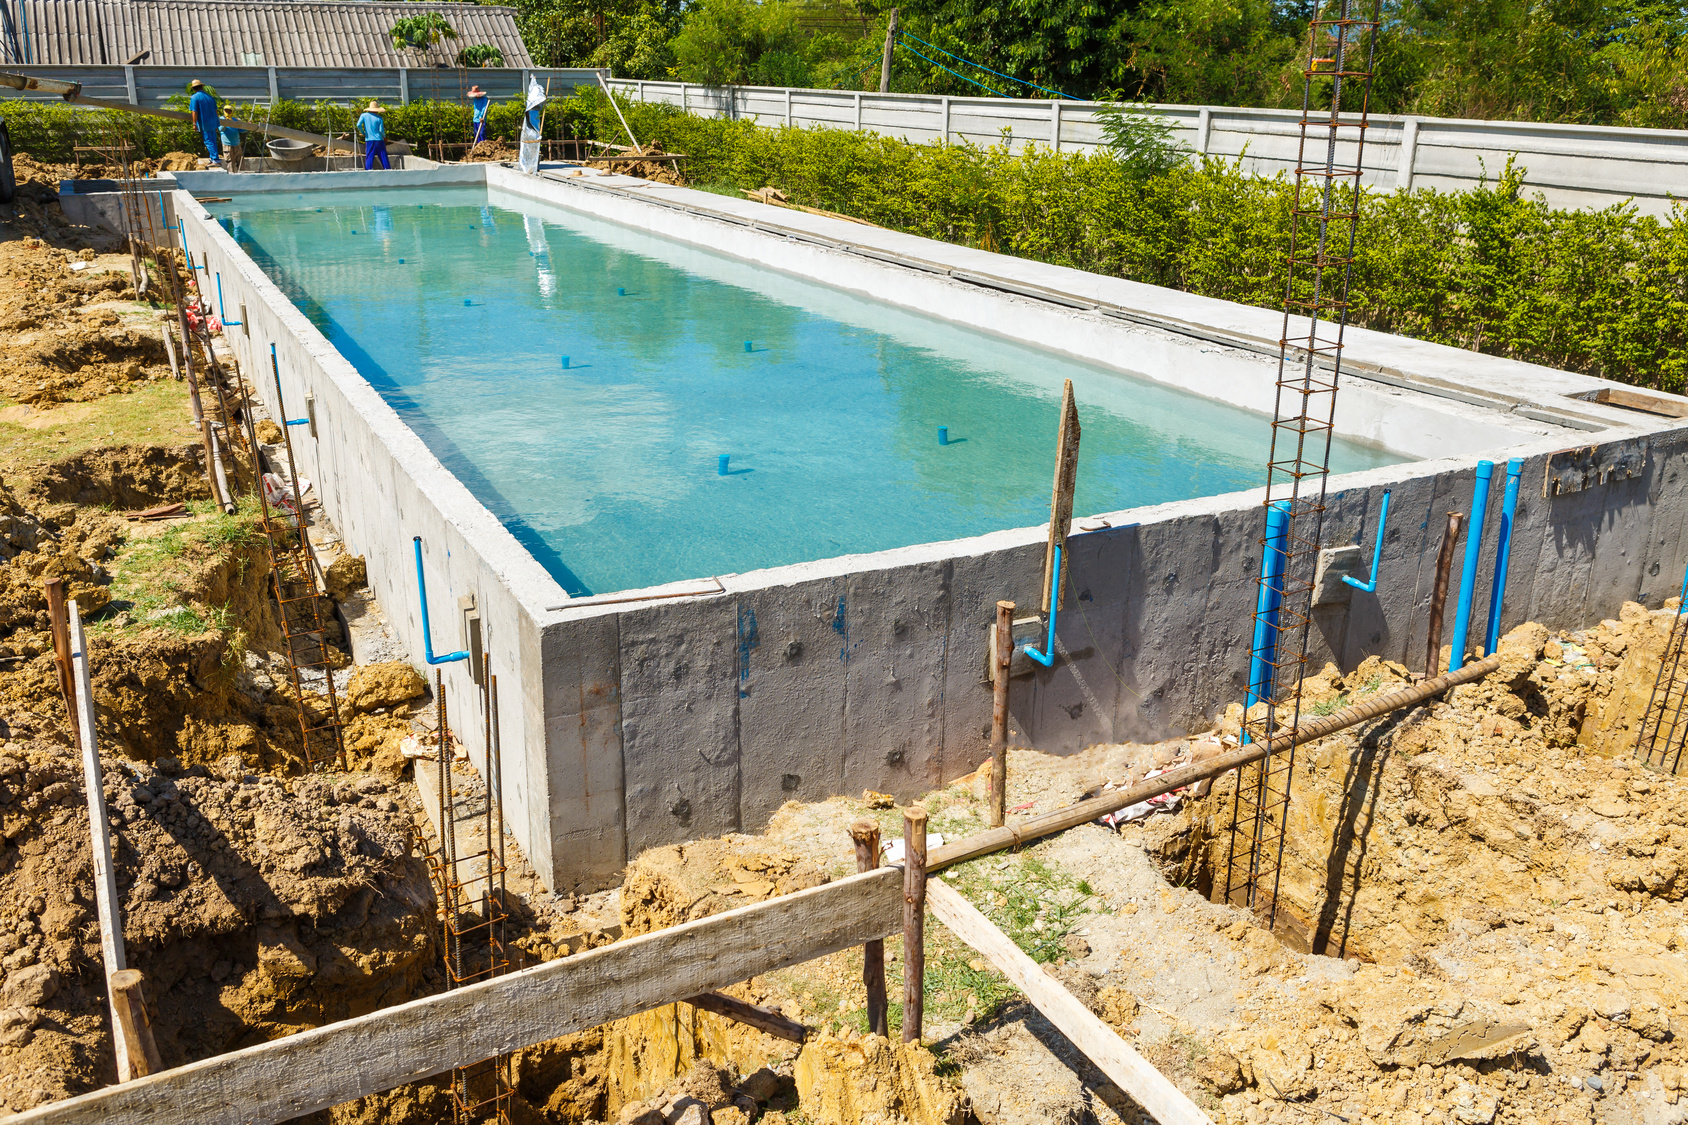 Construire une piscine b ton traditionnelle en kit for Piscine kit beton hors sol